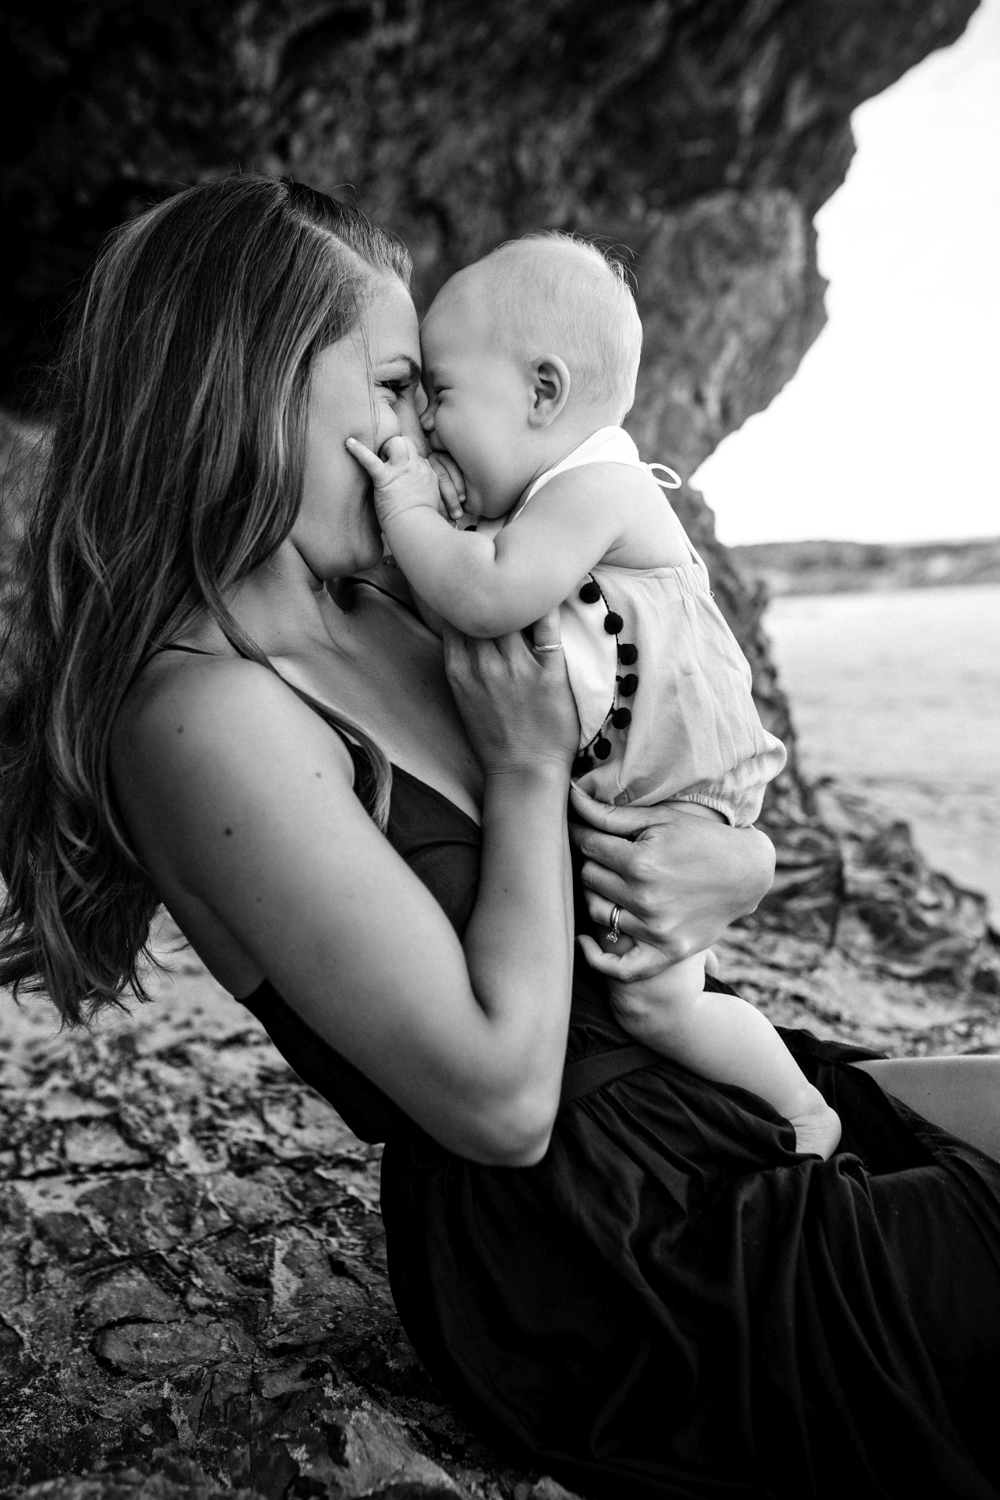 Mum and baby connect and smile during family photo session at Currumbin beach.